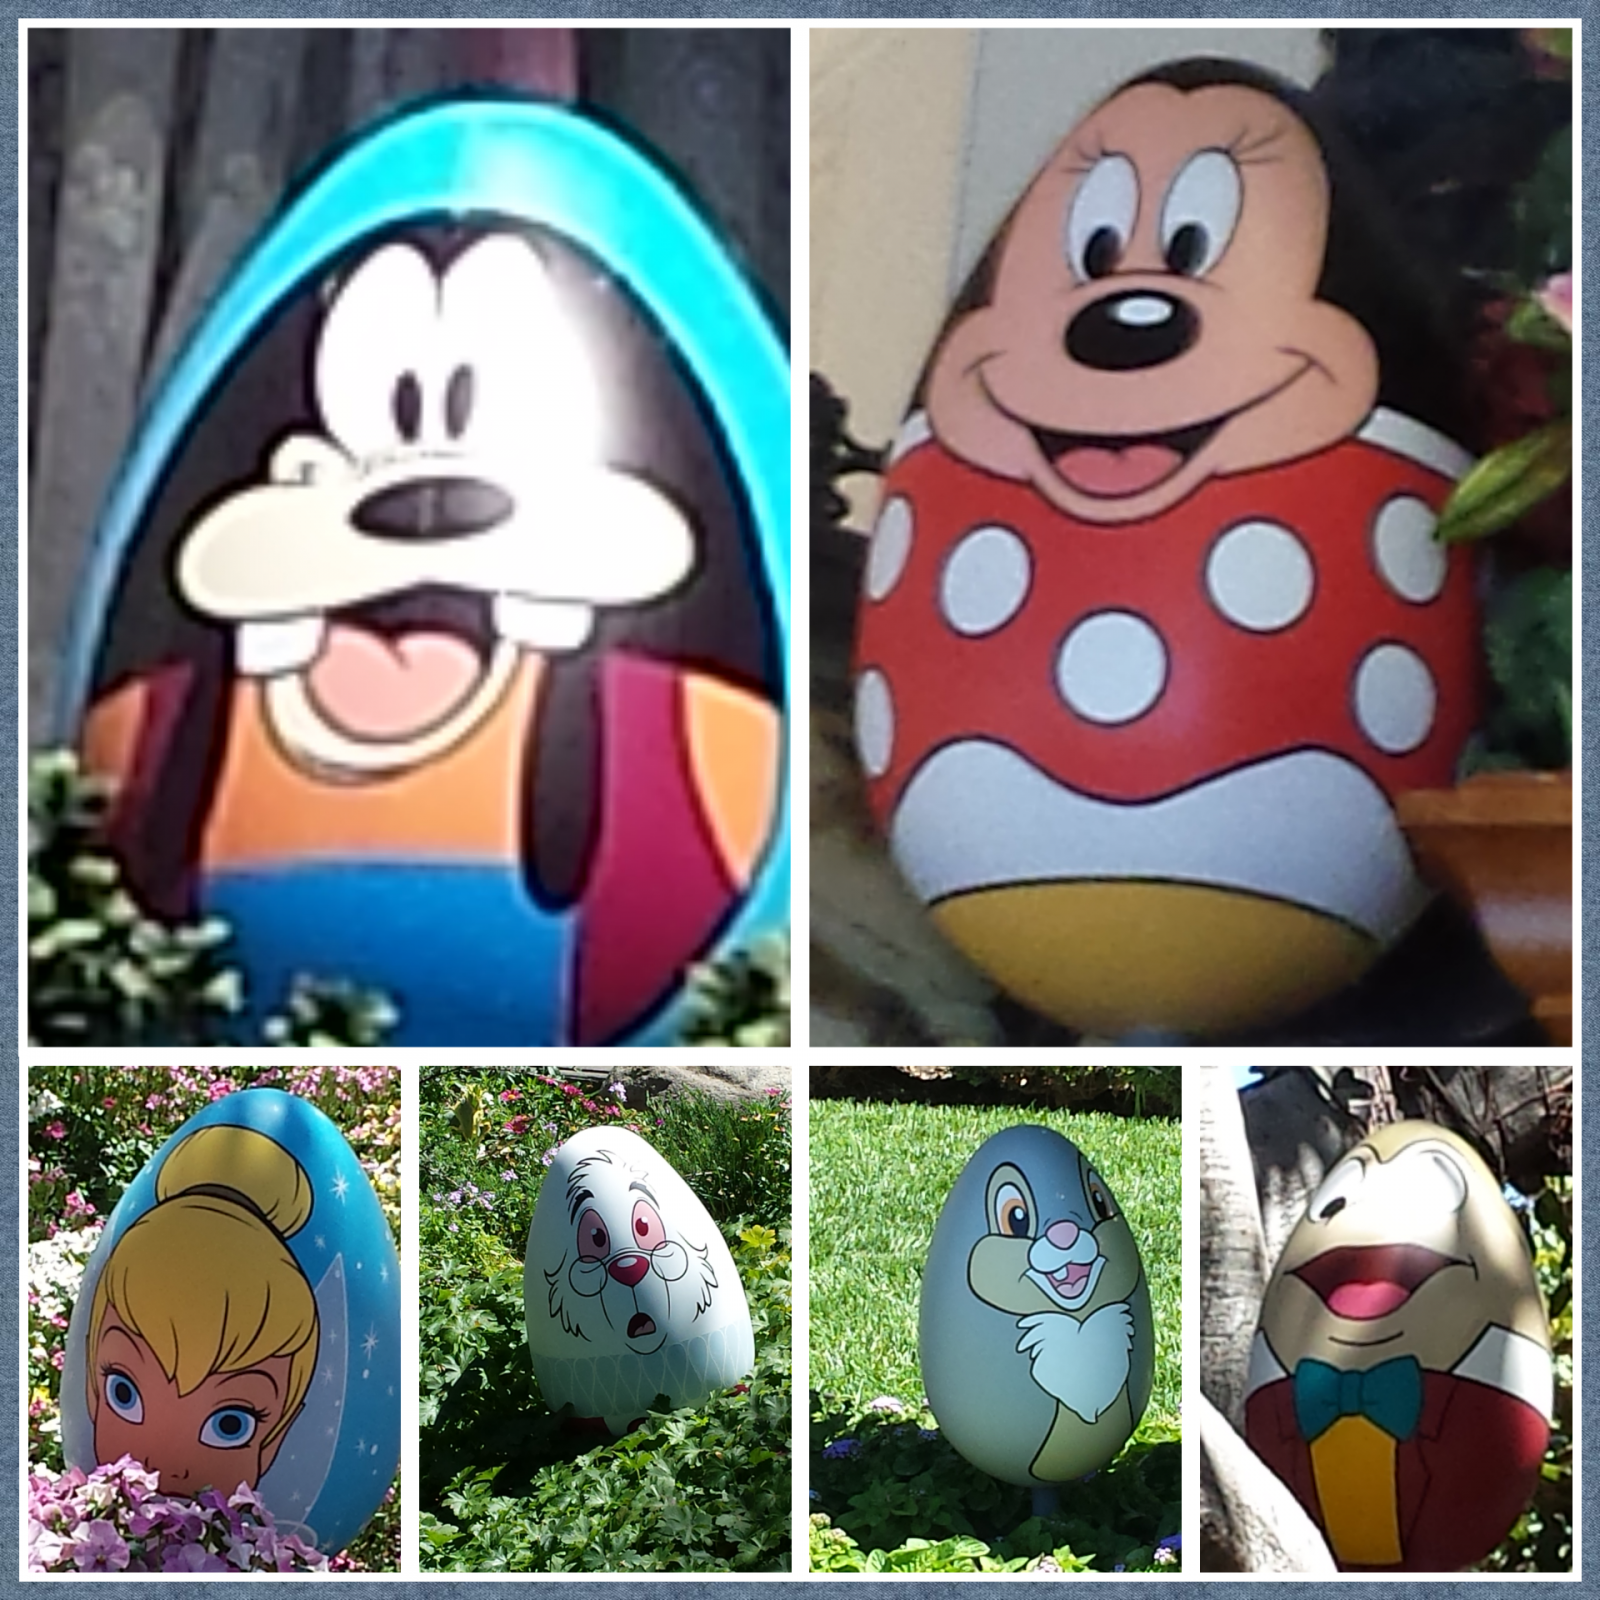 6 of the 12 eggs from the #Disneyland egg-stravaganza 2014. Tomorrow in the full update will post all 24 showing their locations